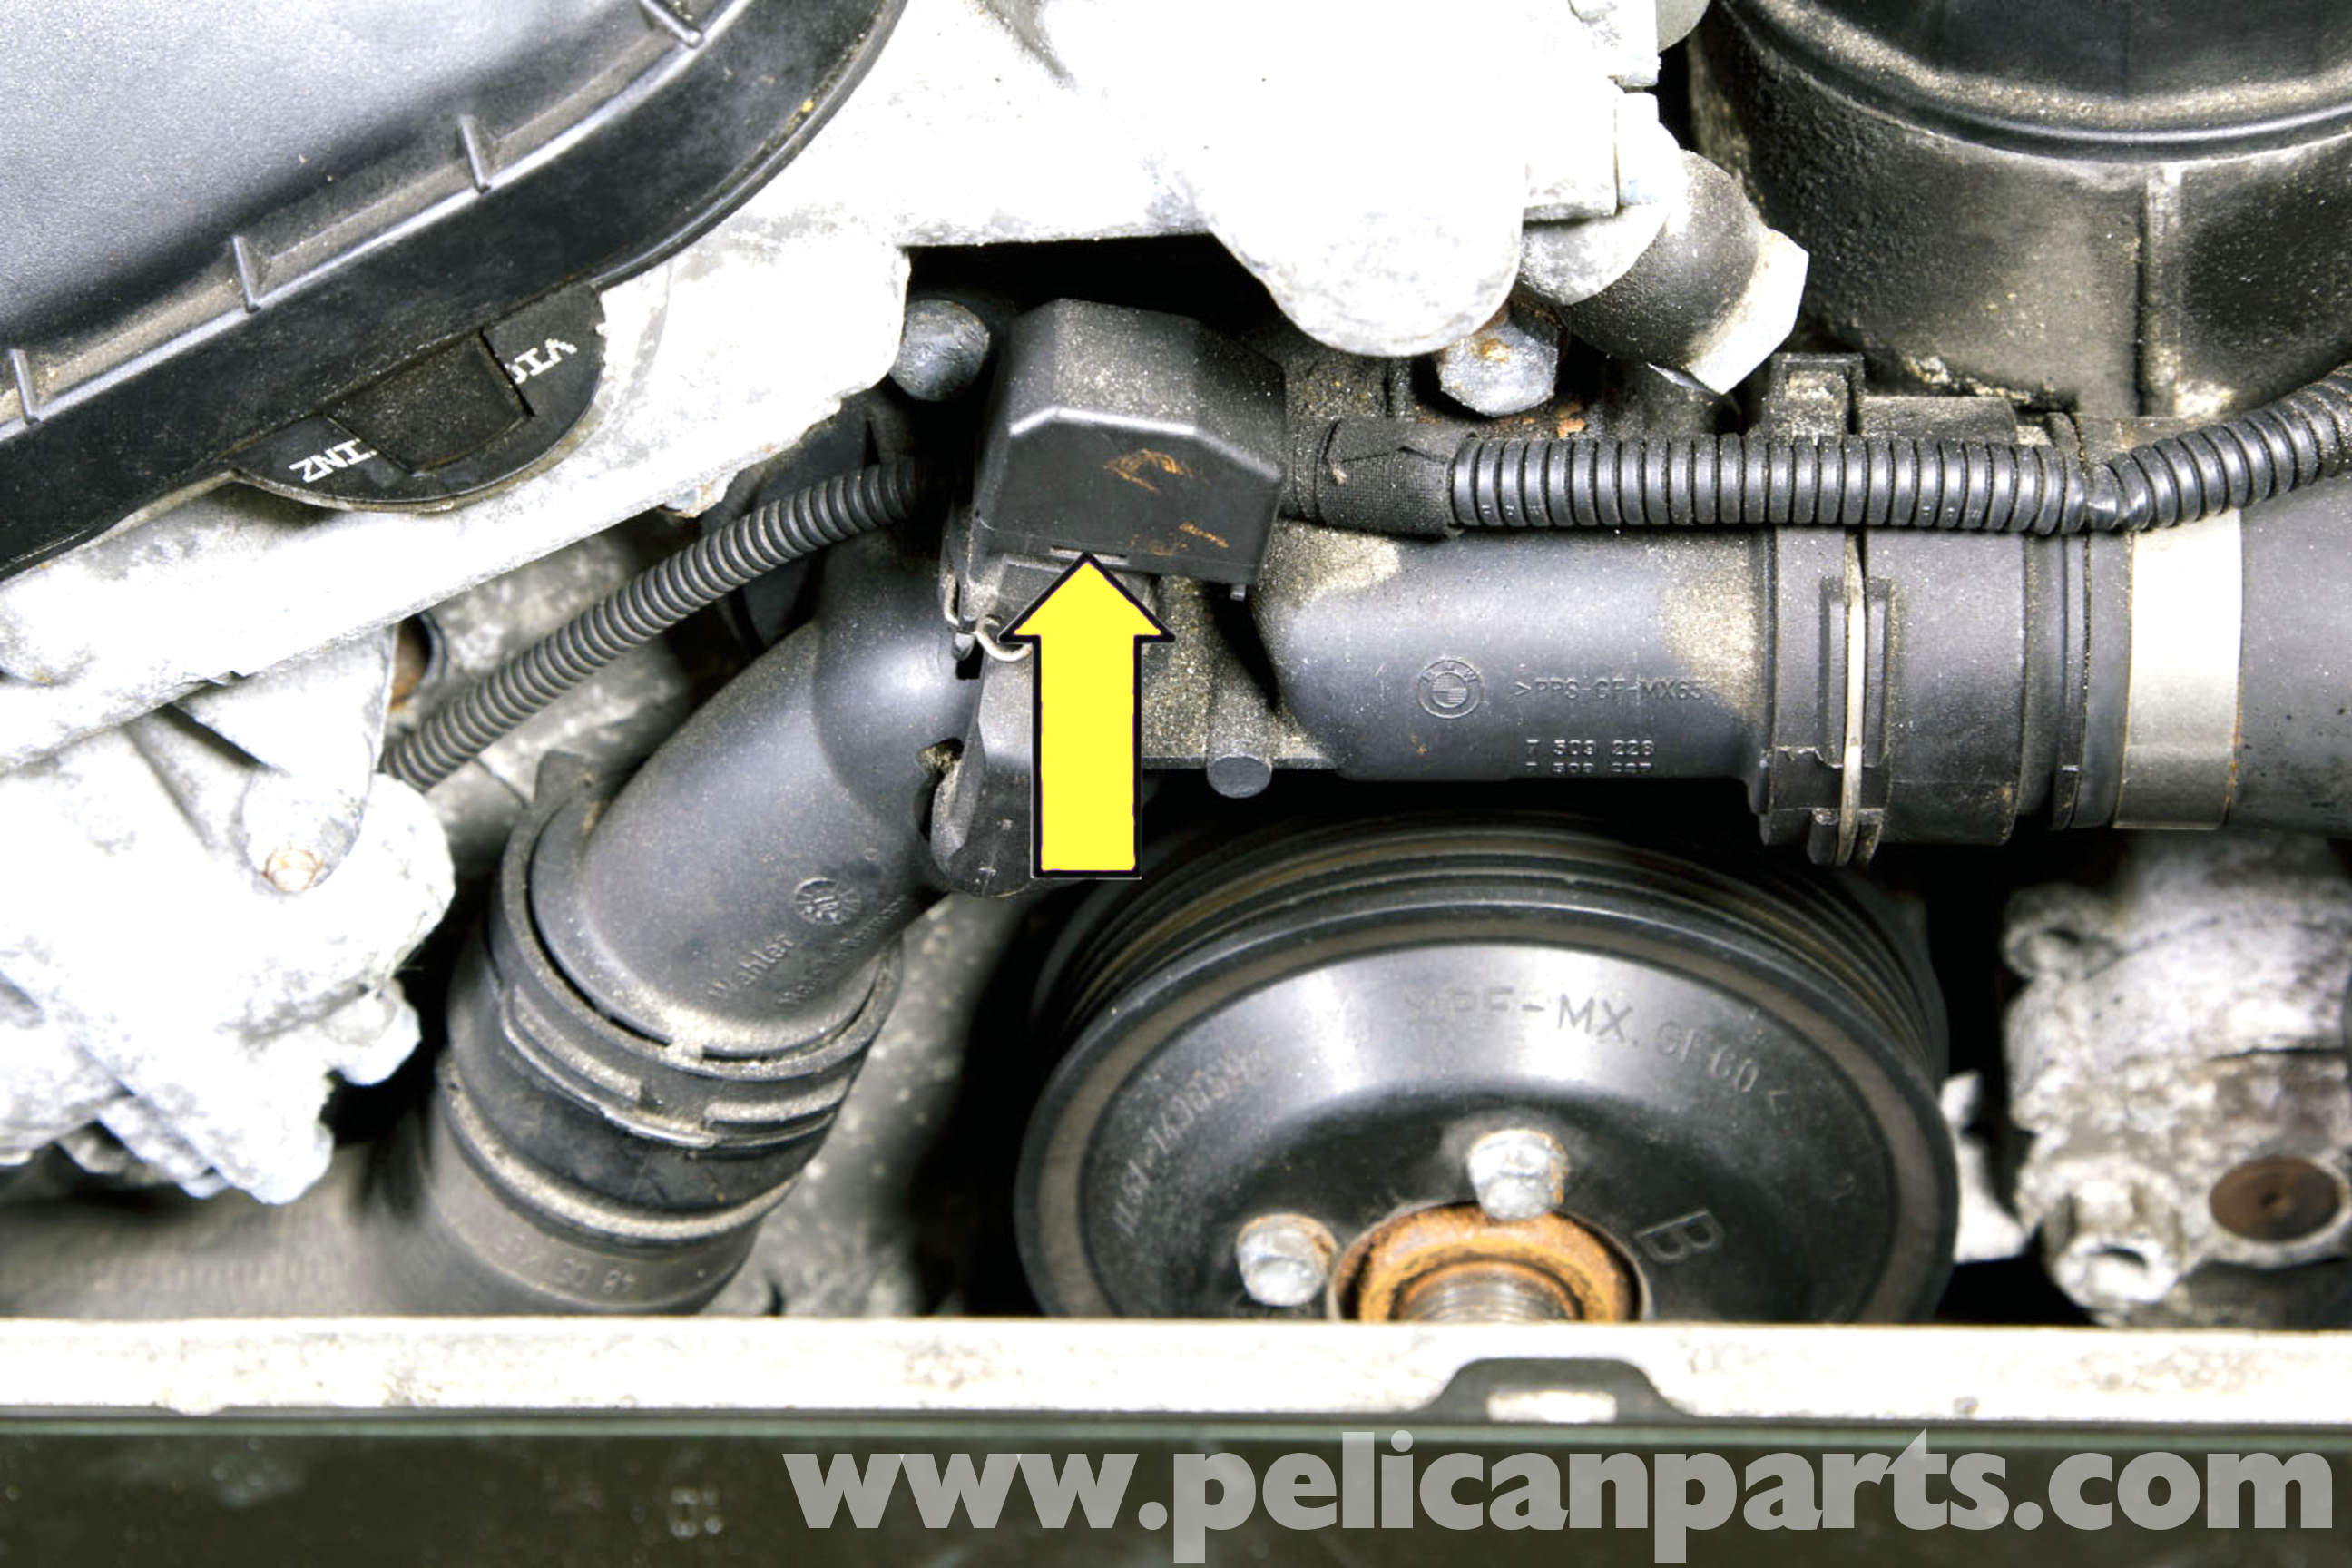 E46 coolant temp sensor location | Engine coolant